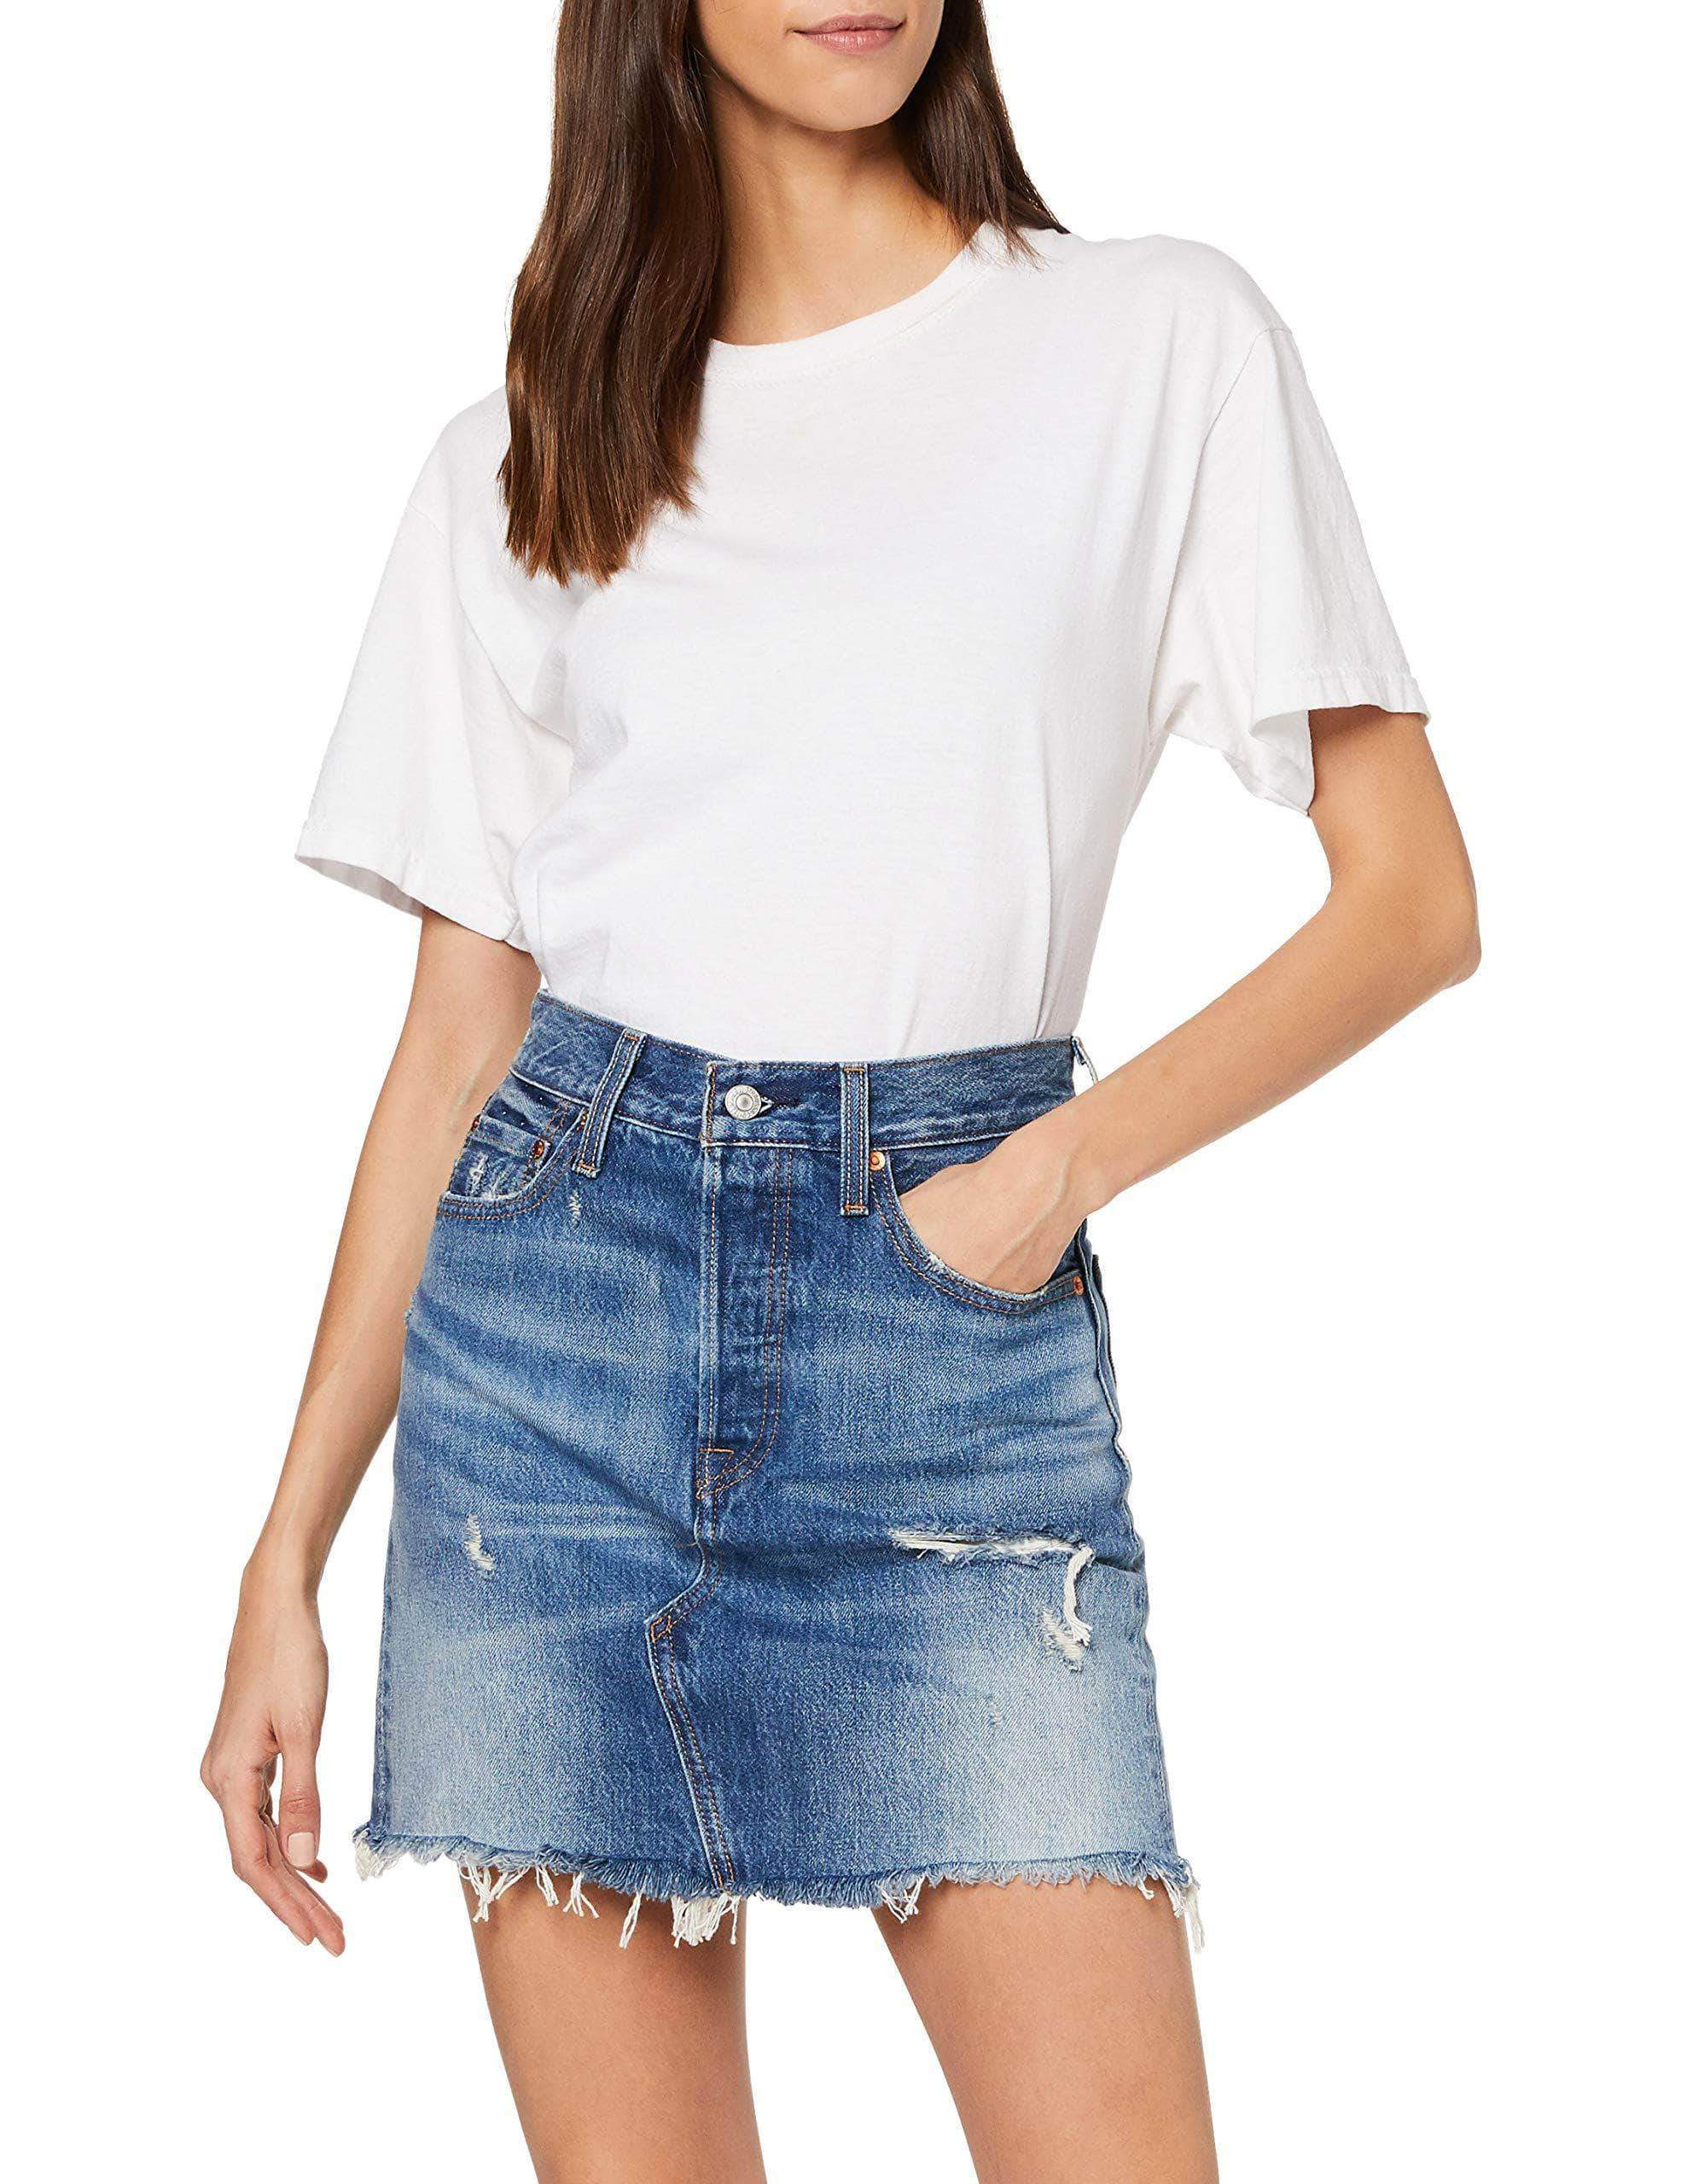 Amazon Levi's HR Decon Iconic BF Skirt Falda, Azul (High Plains 0011), Talla Única (Talla del Fabricante: 27) para Mujer